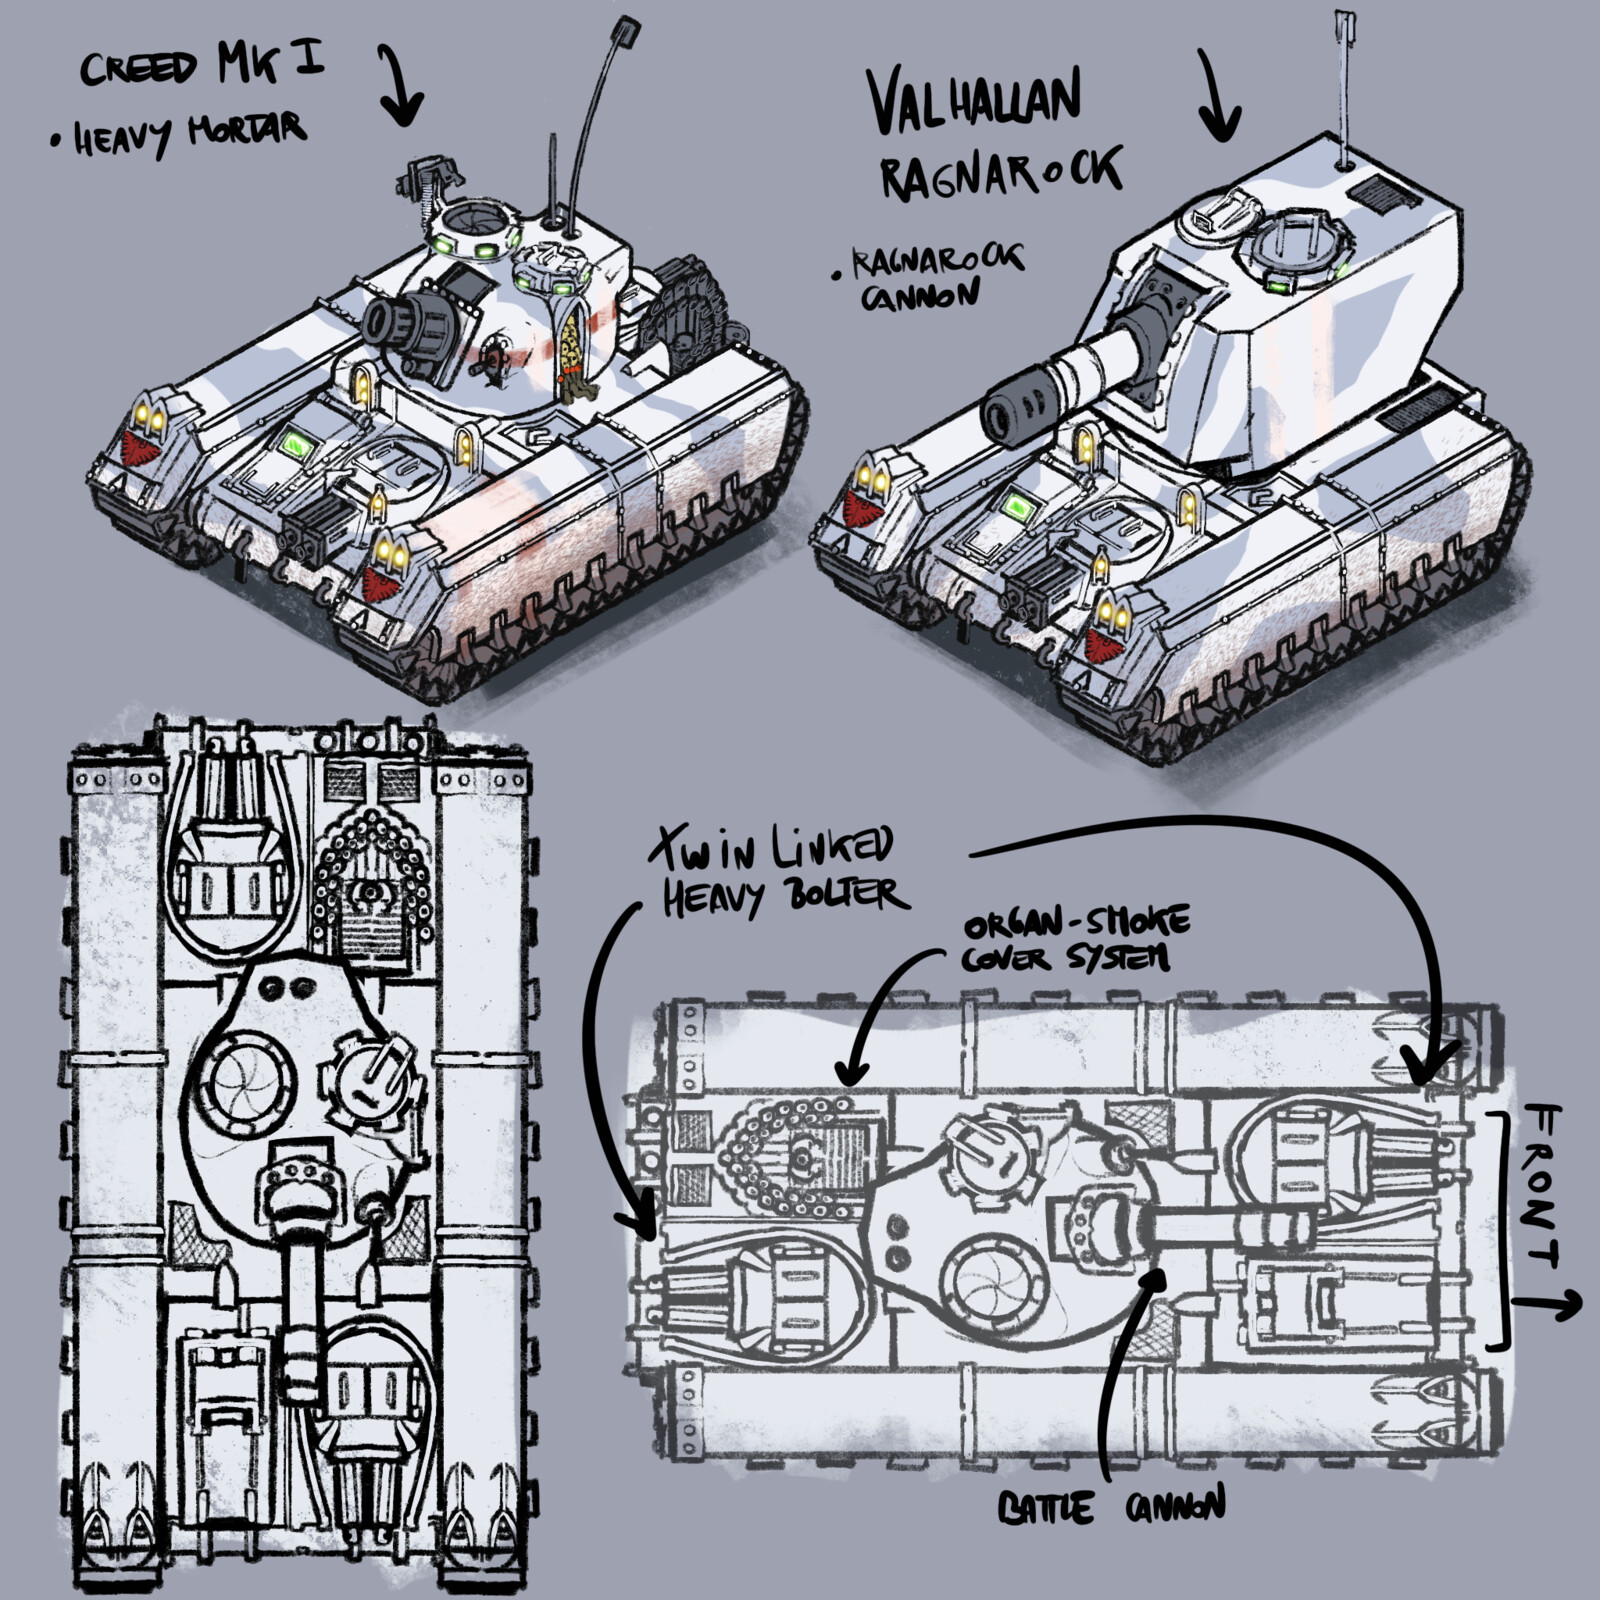 It is like a mobile fortress, its aim is to absorve the incoming fire covering the advancing infantry behind… The tank uses a smoke cover system generated from a gothic organ in its rear.